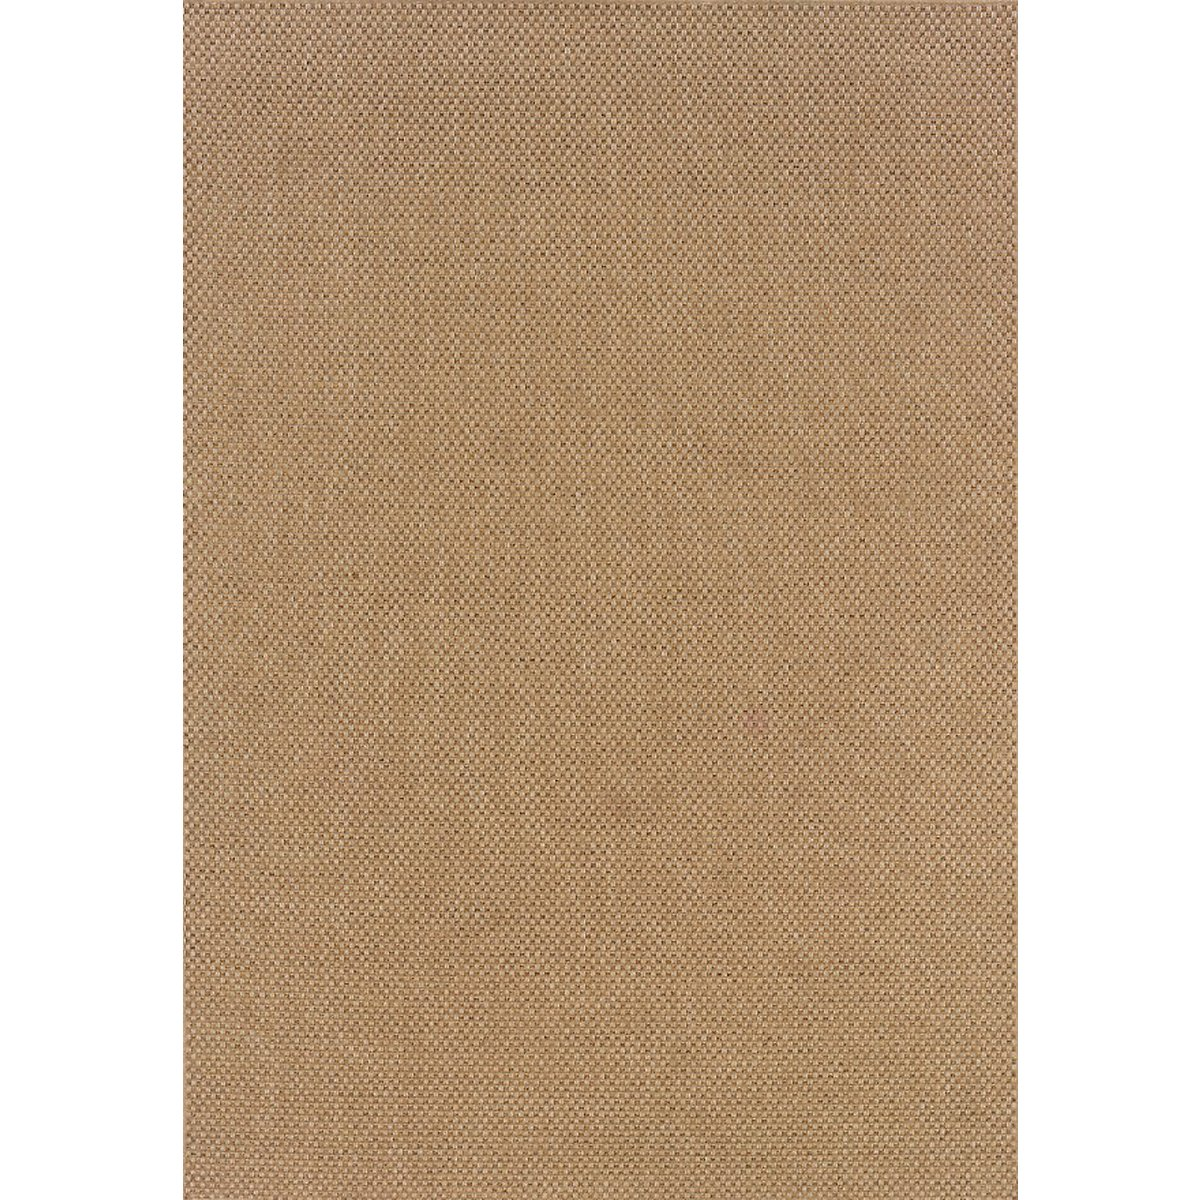 Karavia Khaki Indoor/Outdoor 8x11 Area Rug